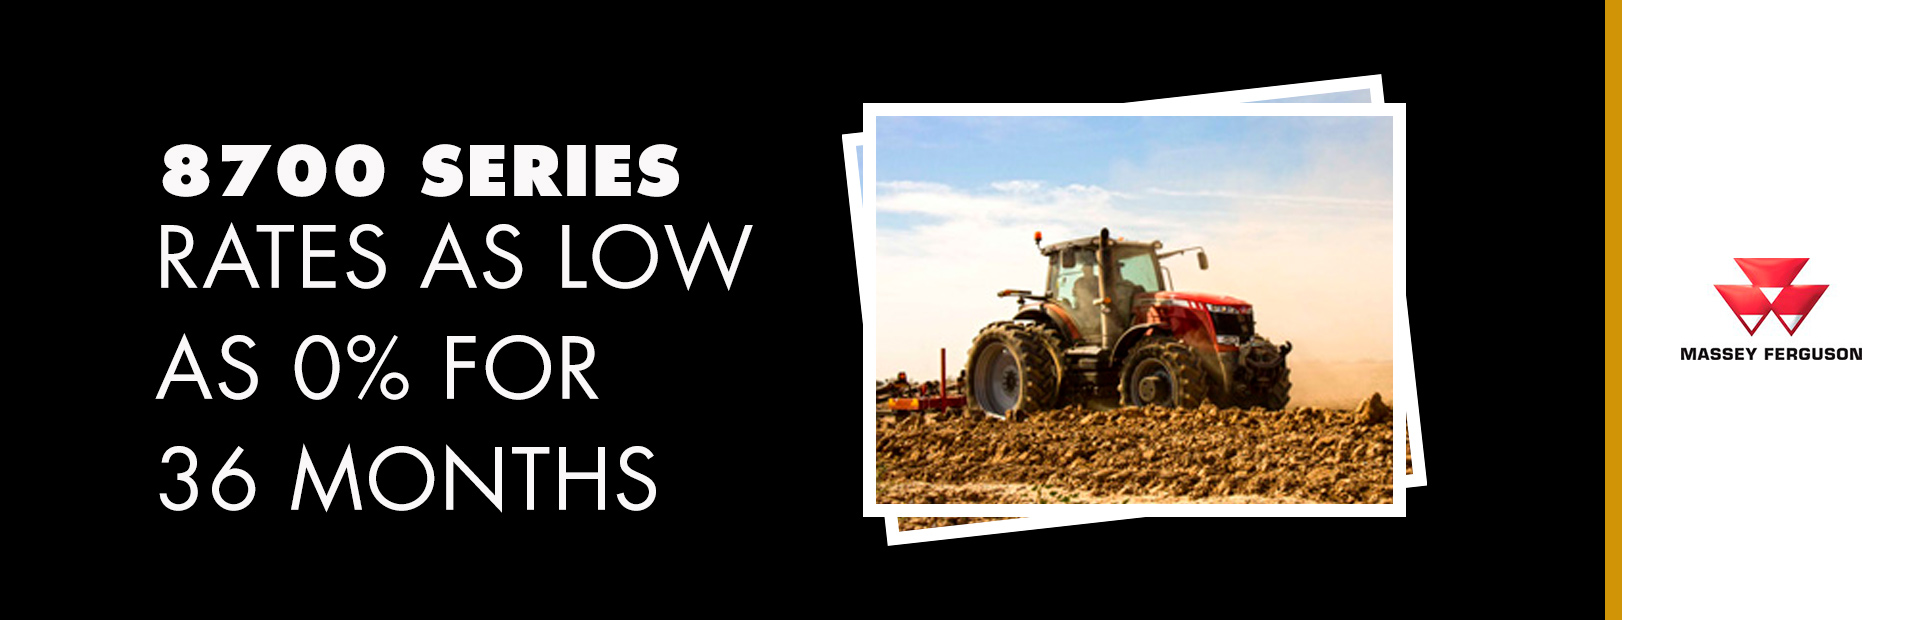 Massey Ferguson: 8700 Series - Rates as low as 0% for 36 Months